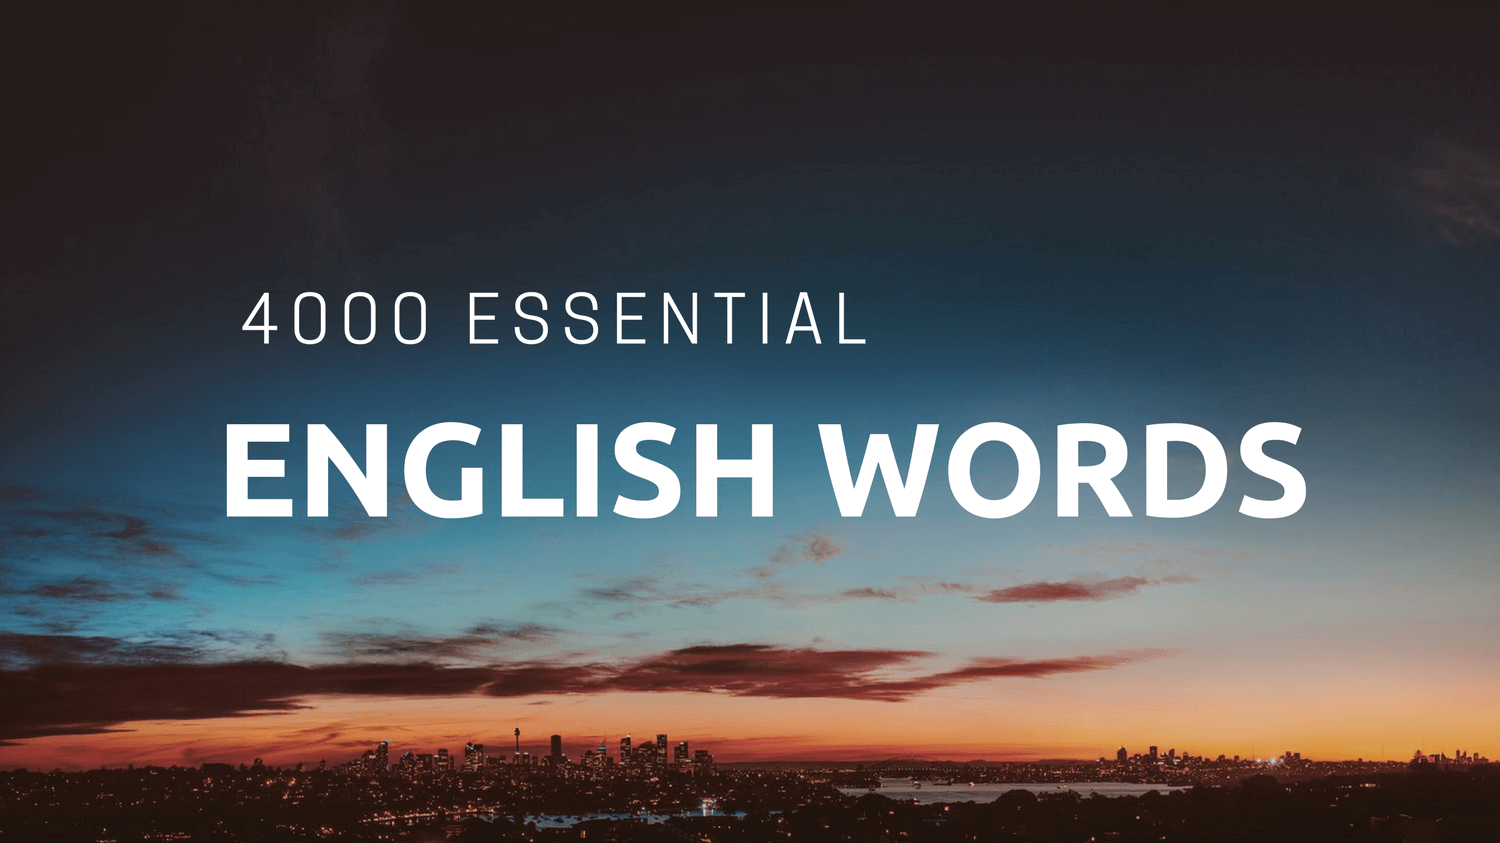 4000 ESSENTIAL ENGLISH WORDS in STORIES